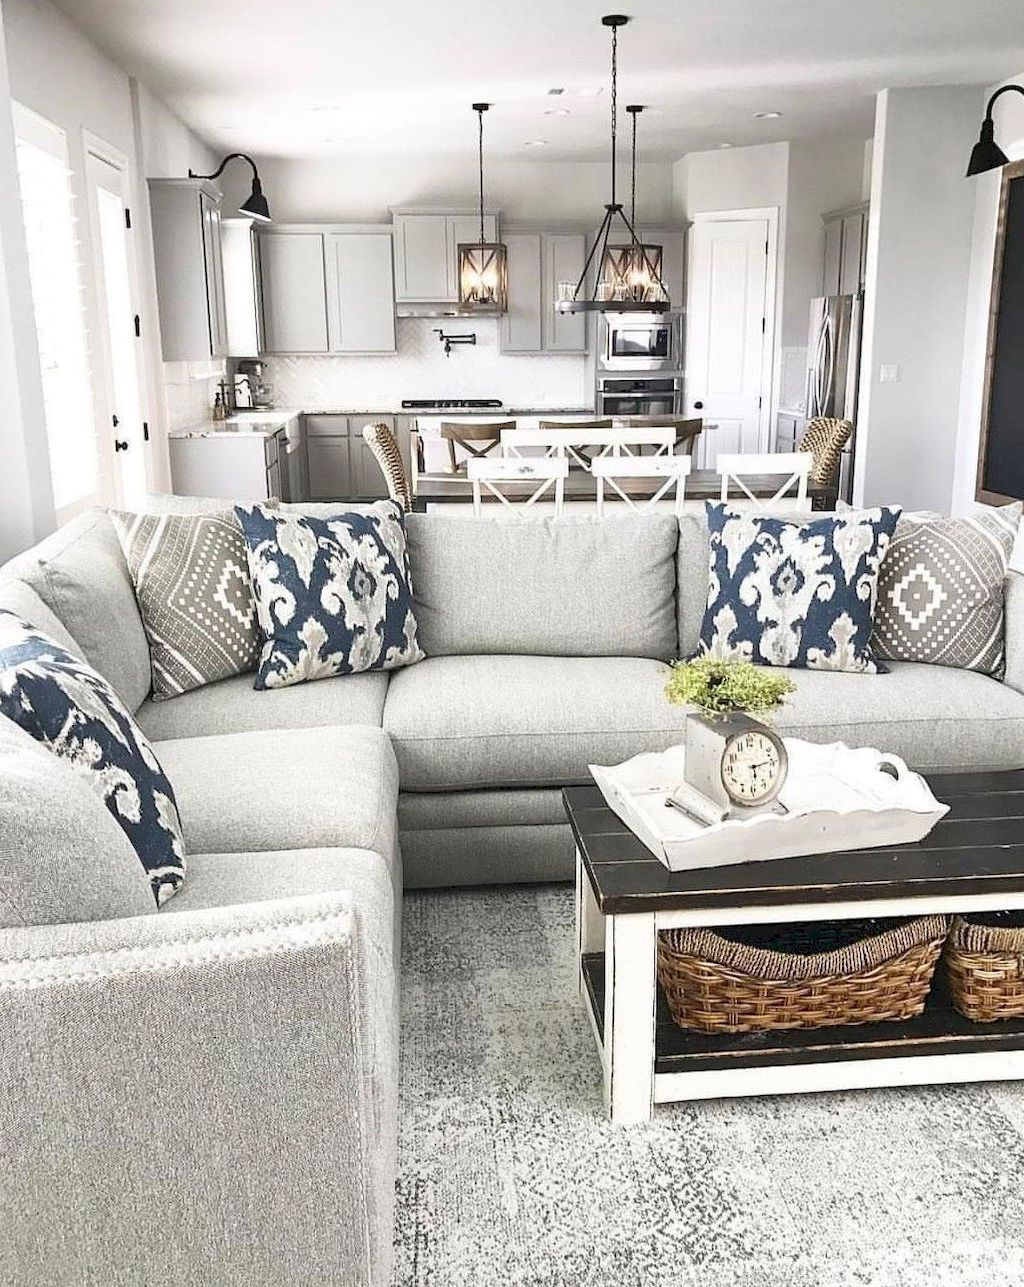 Comfy Farmhouse Living Room Designs To Steal: Comfy Farmhouse Living Room Designs To Steal (59